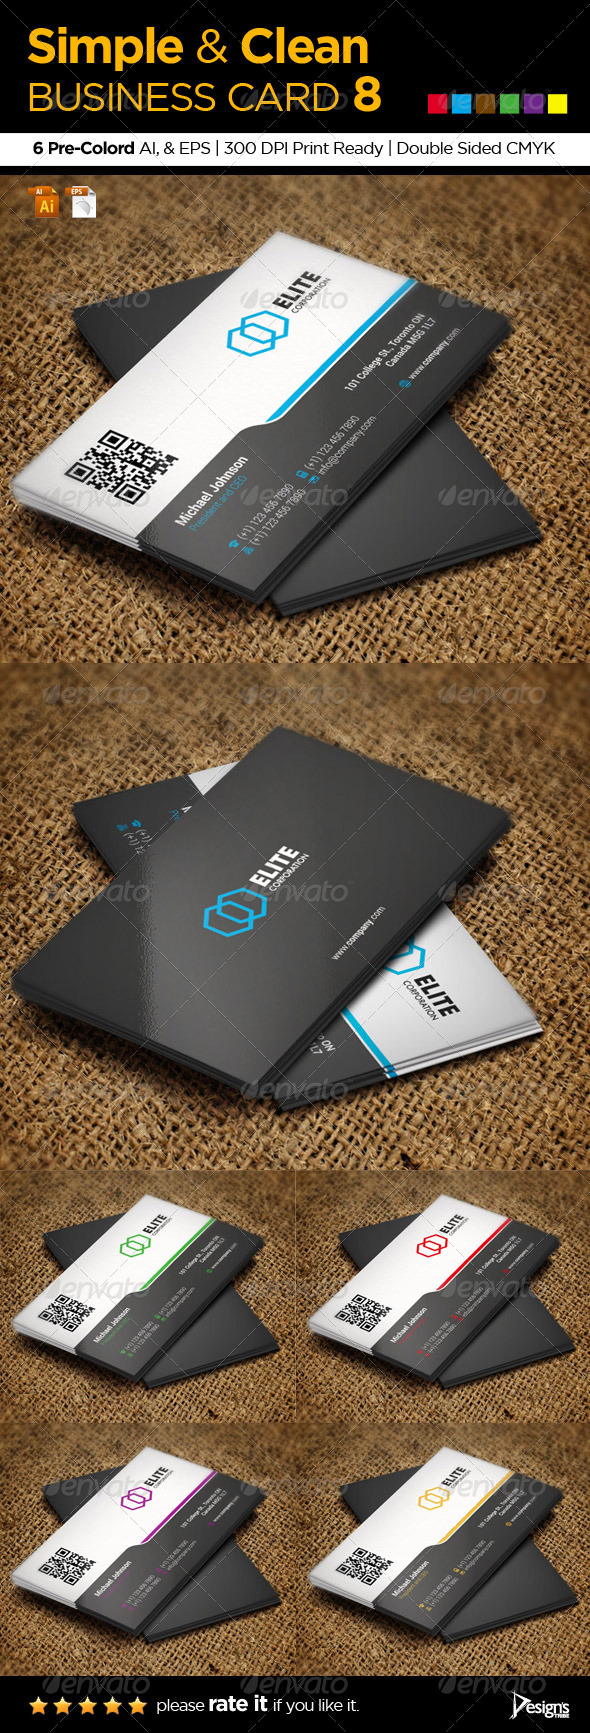 GraphicRiver Simple and Clean Business Card 8 5704655